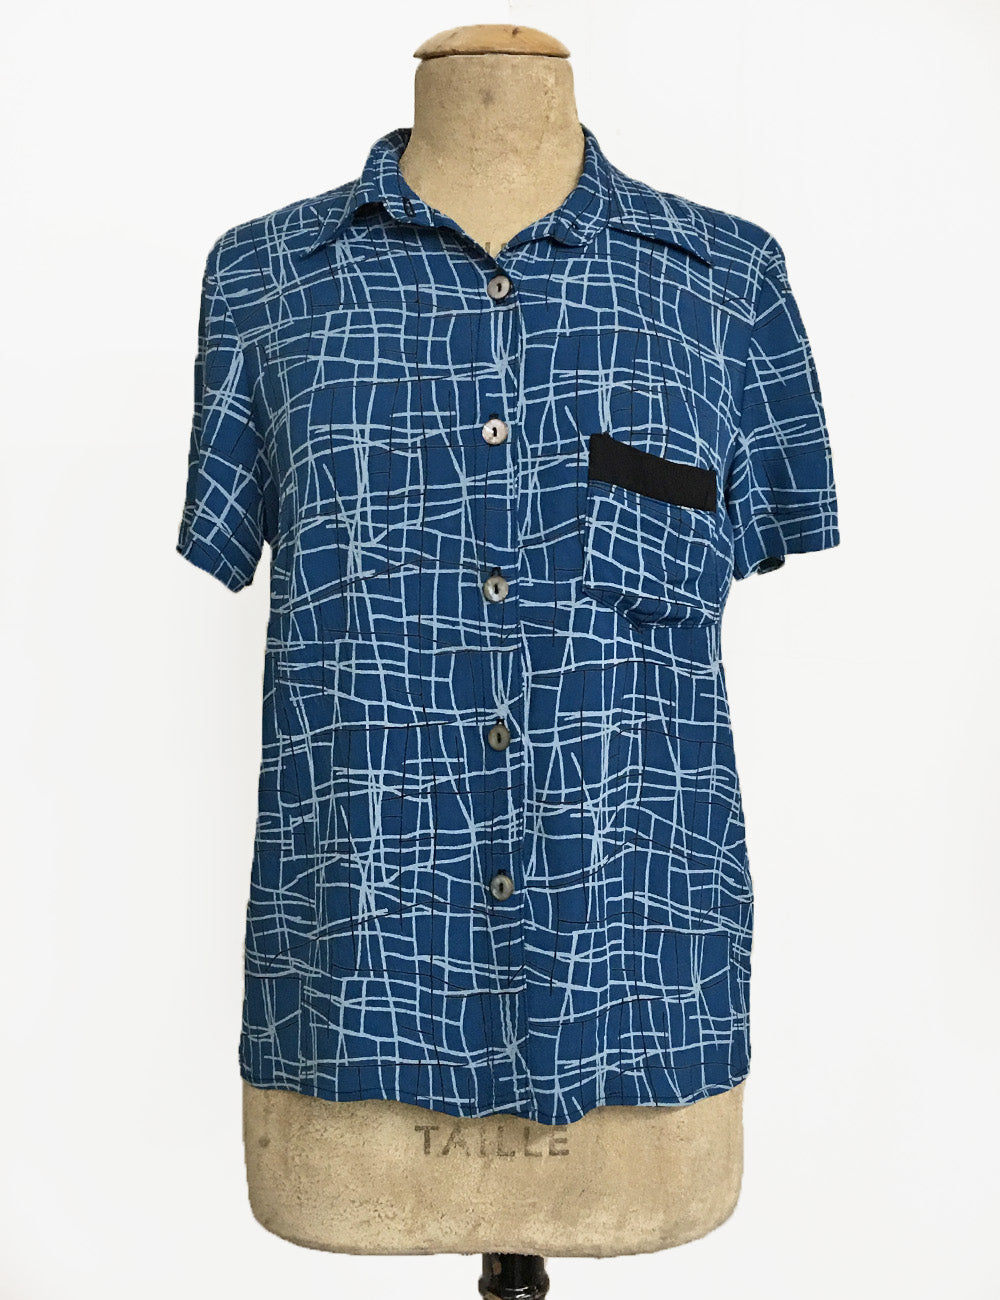 Marine Blue Mid-Century Lines Button Up Short Sleeve Camp Shirt